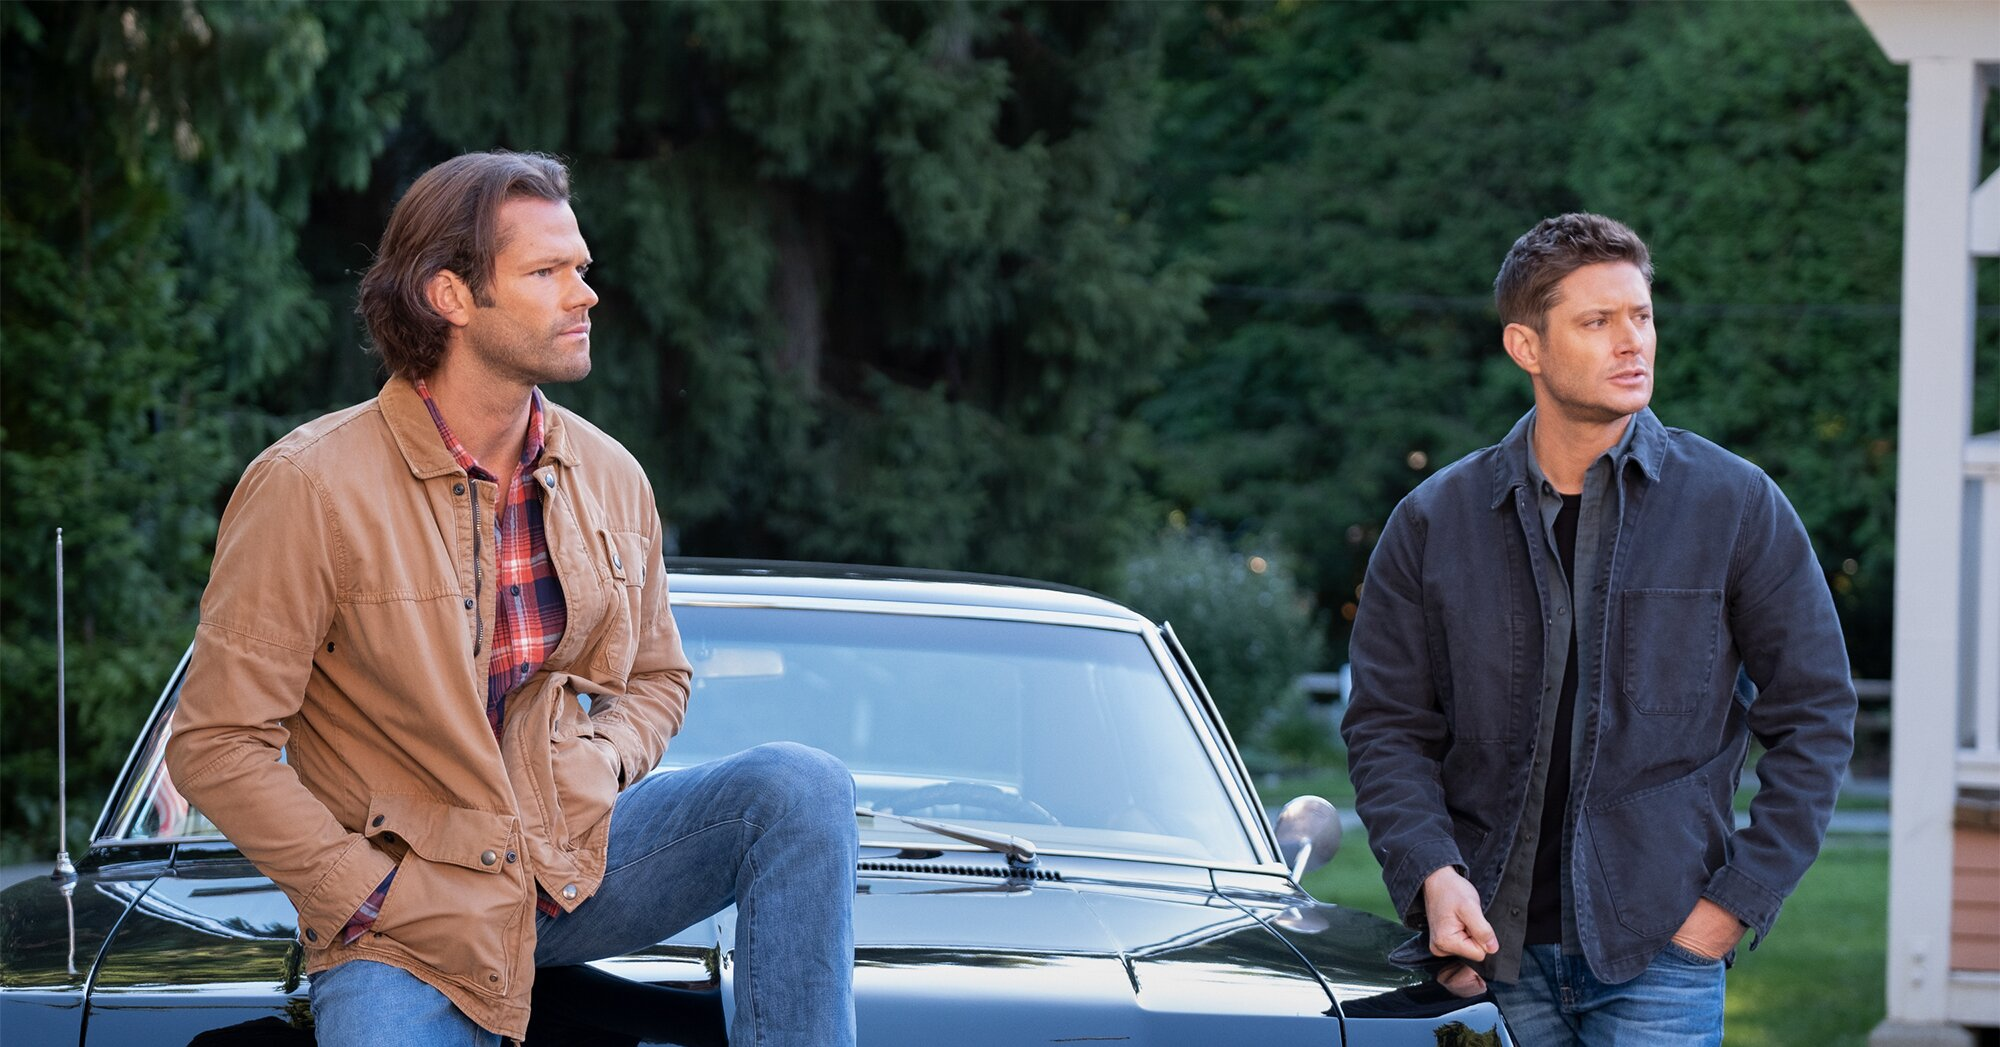 Supernatural season 15 episode 20 recap: Here's how it ends | EW.com – Entertainment Weekly